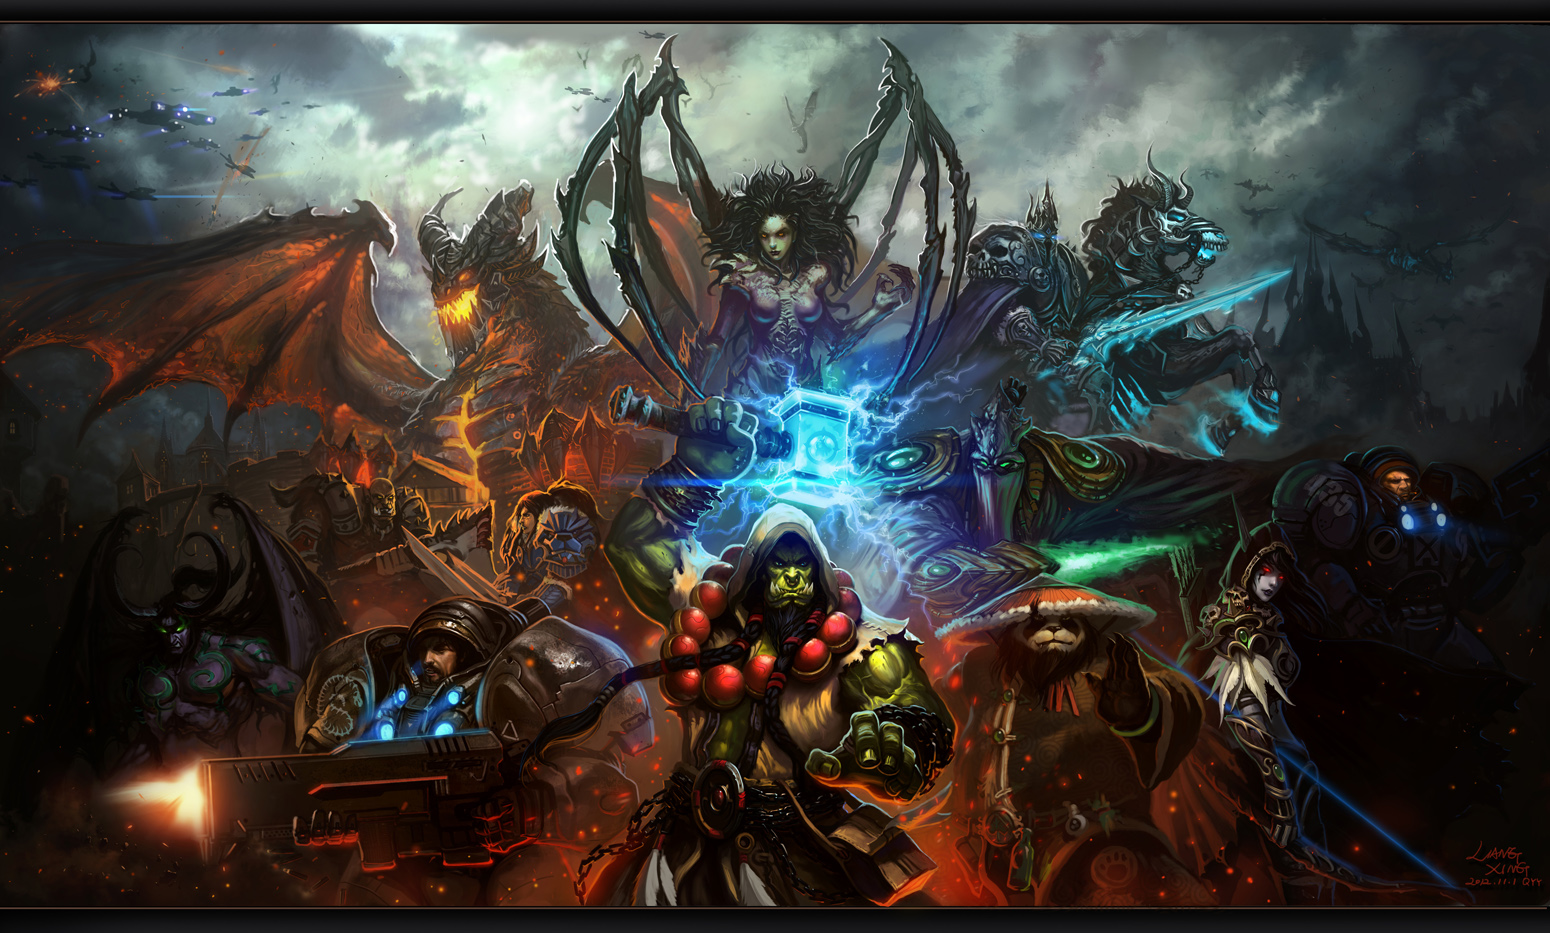 http://3.bp.blogspot.com/-wK5QRzkz6Js/UOQQ1LJ9GEI/AAAAAAAAFLM/mlZh9fQByp0/s1600/Starcraft-vs-World-of-Warcraft-All-Stars-by-Liang-Xing.jpg